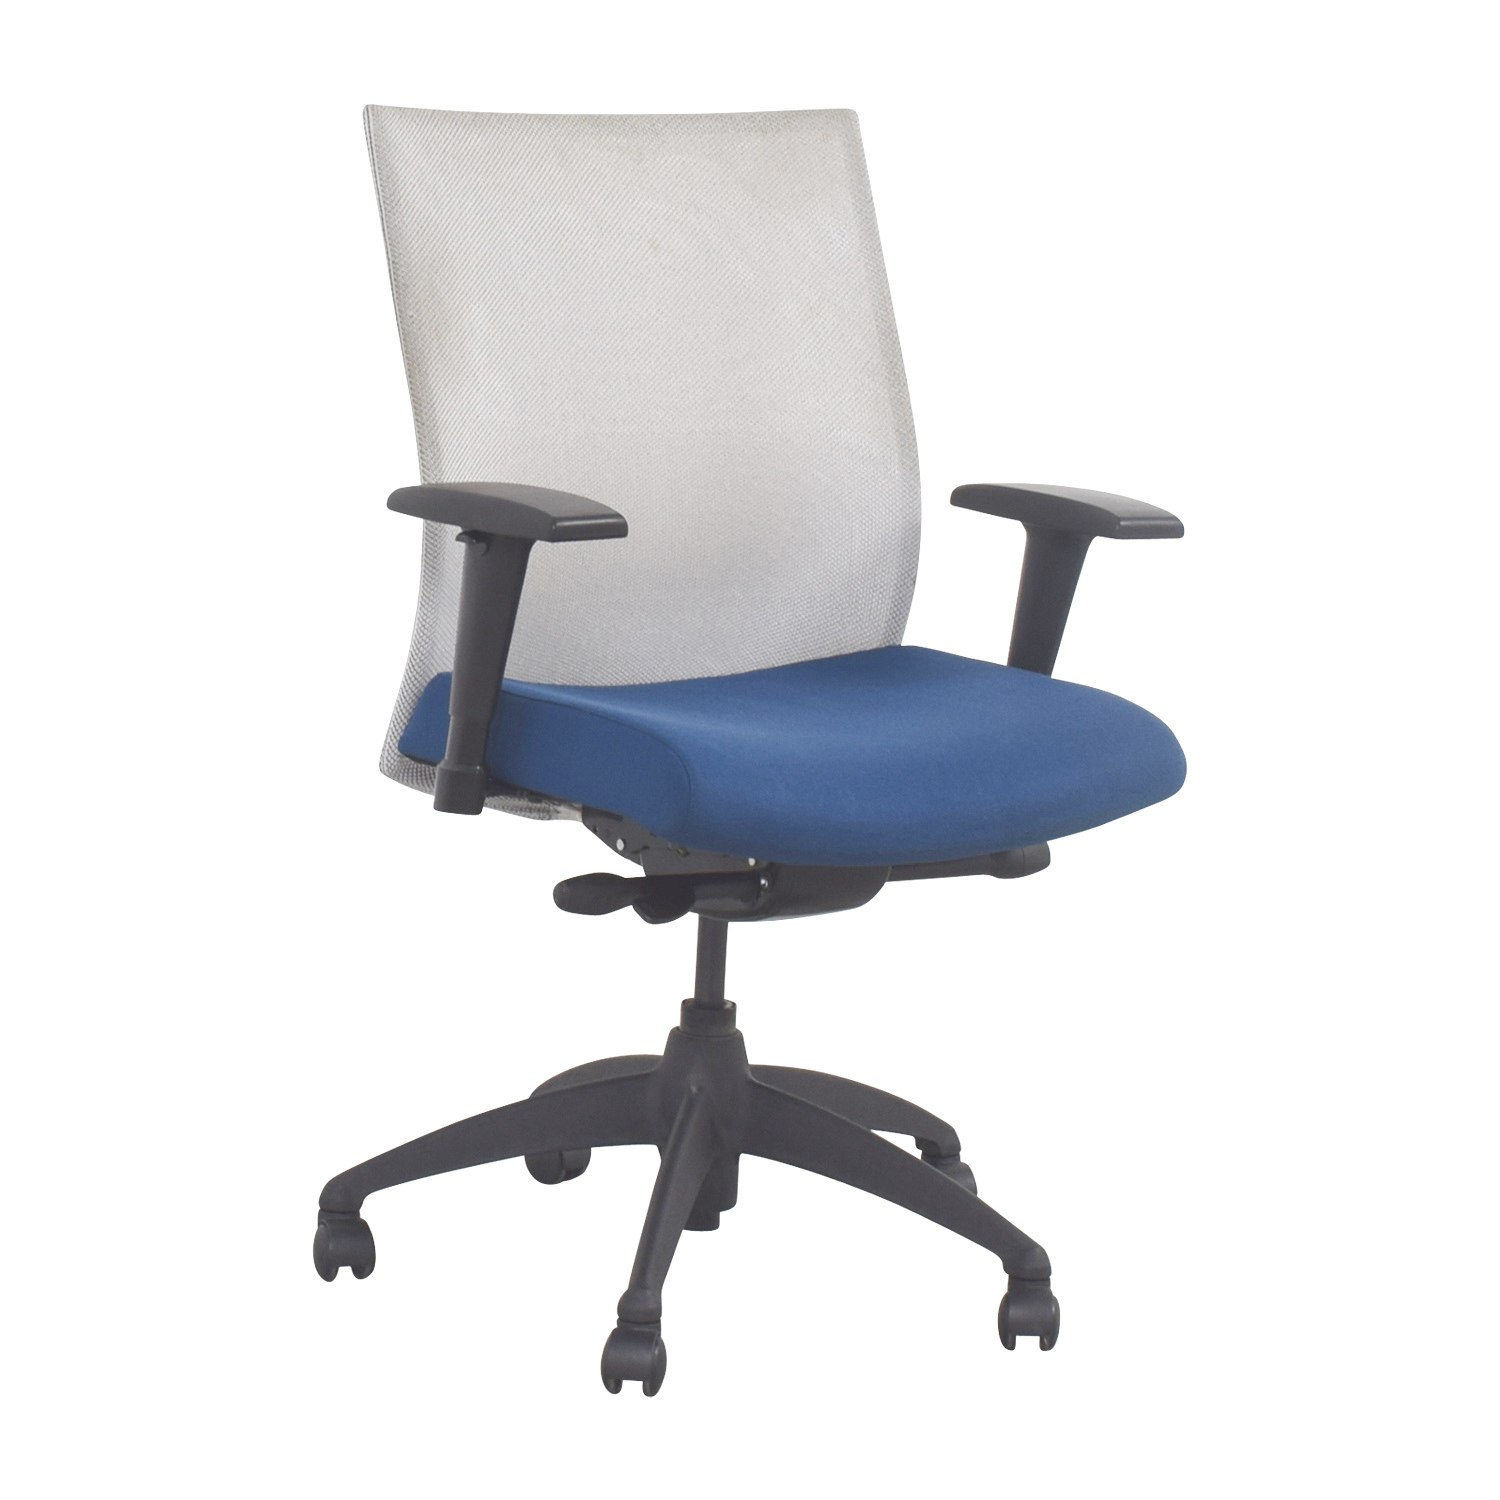 Task Chairs With Arms 90 Off Stylex Stylex Blue Adjustable Arms Task Chair Chairs